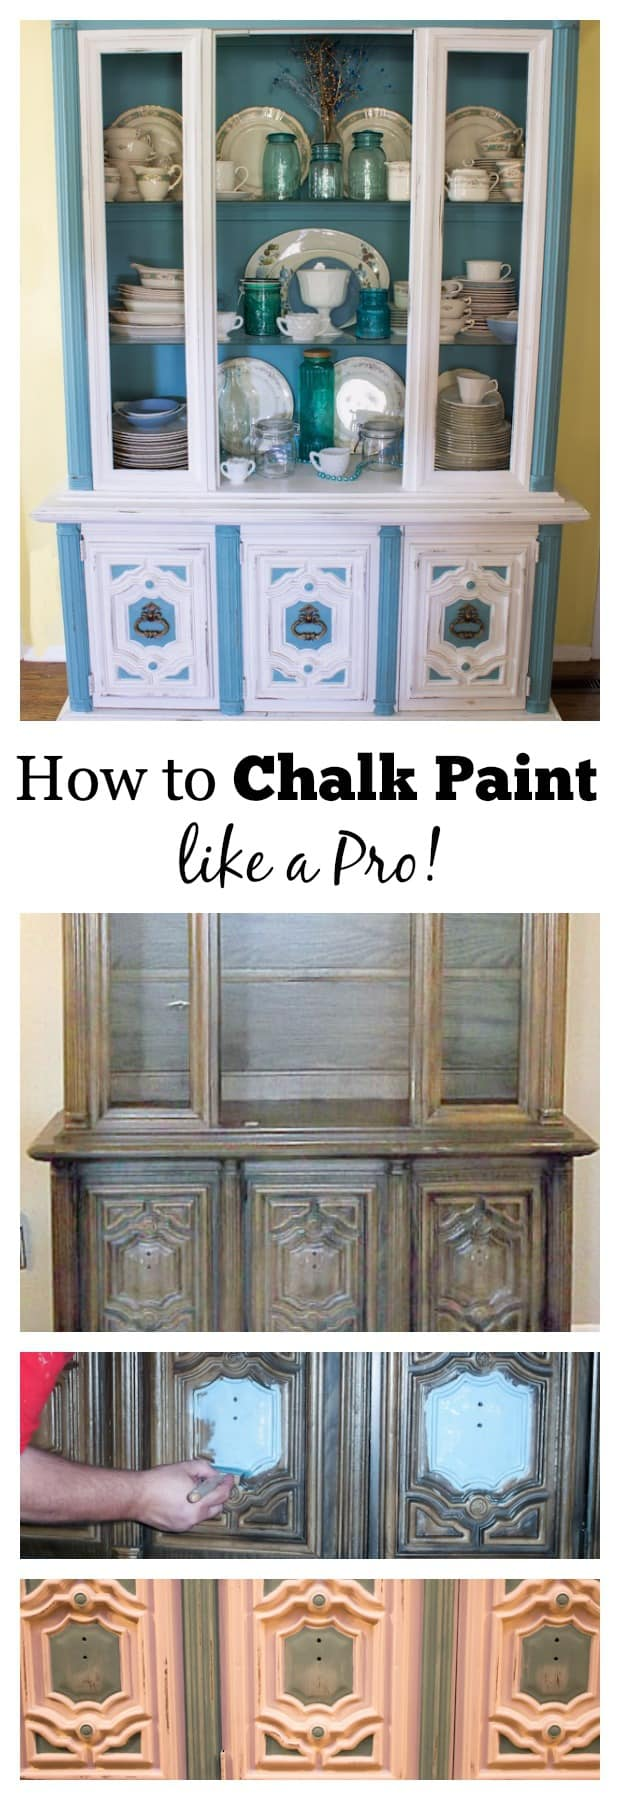 Chalk Paint Like a Pro - Marty's Musings